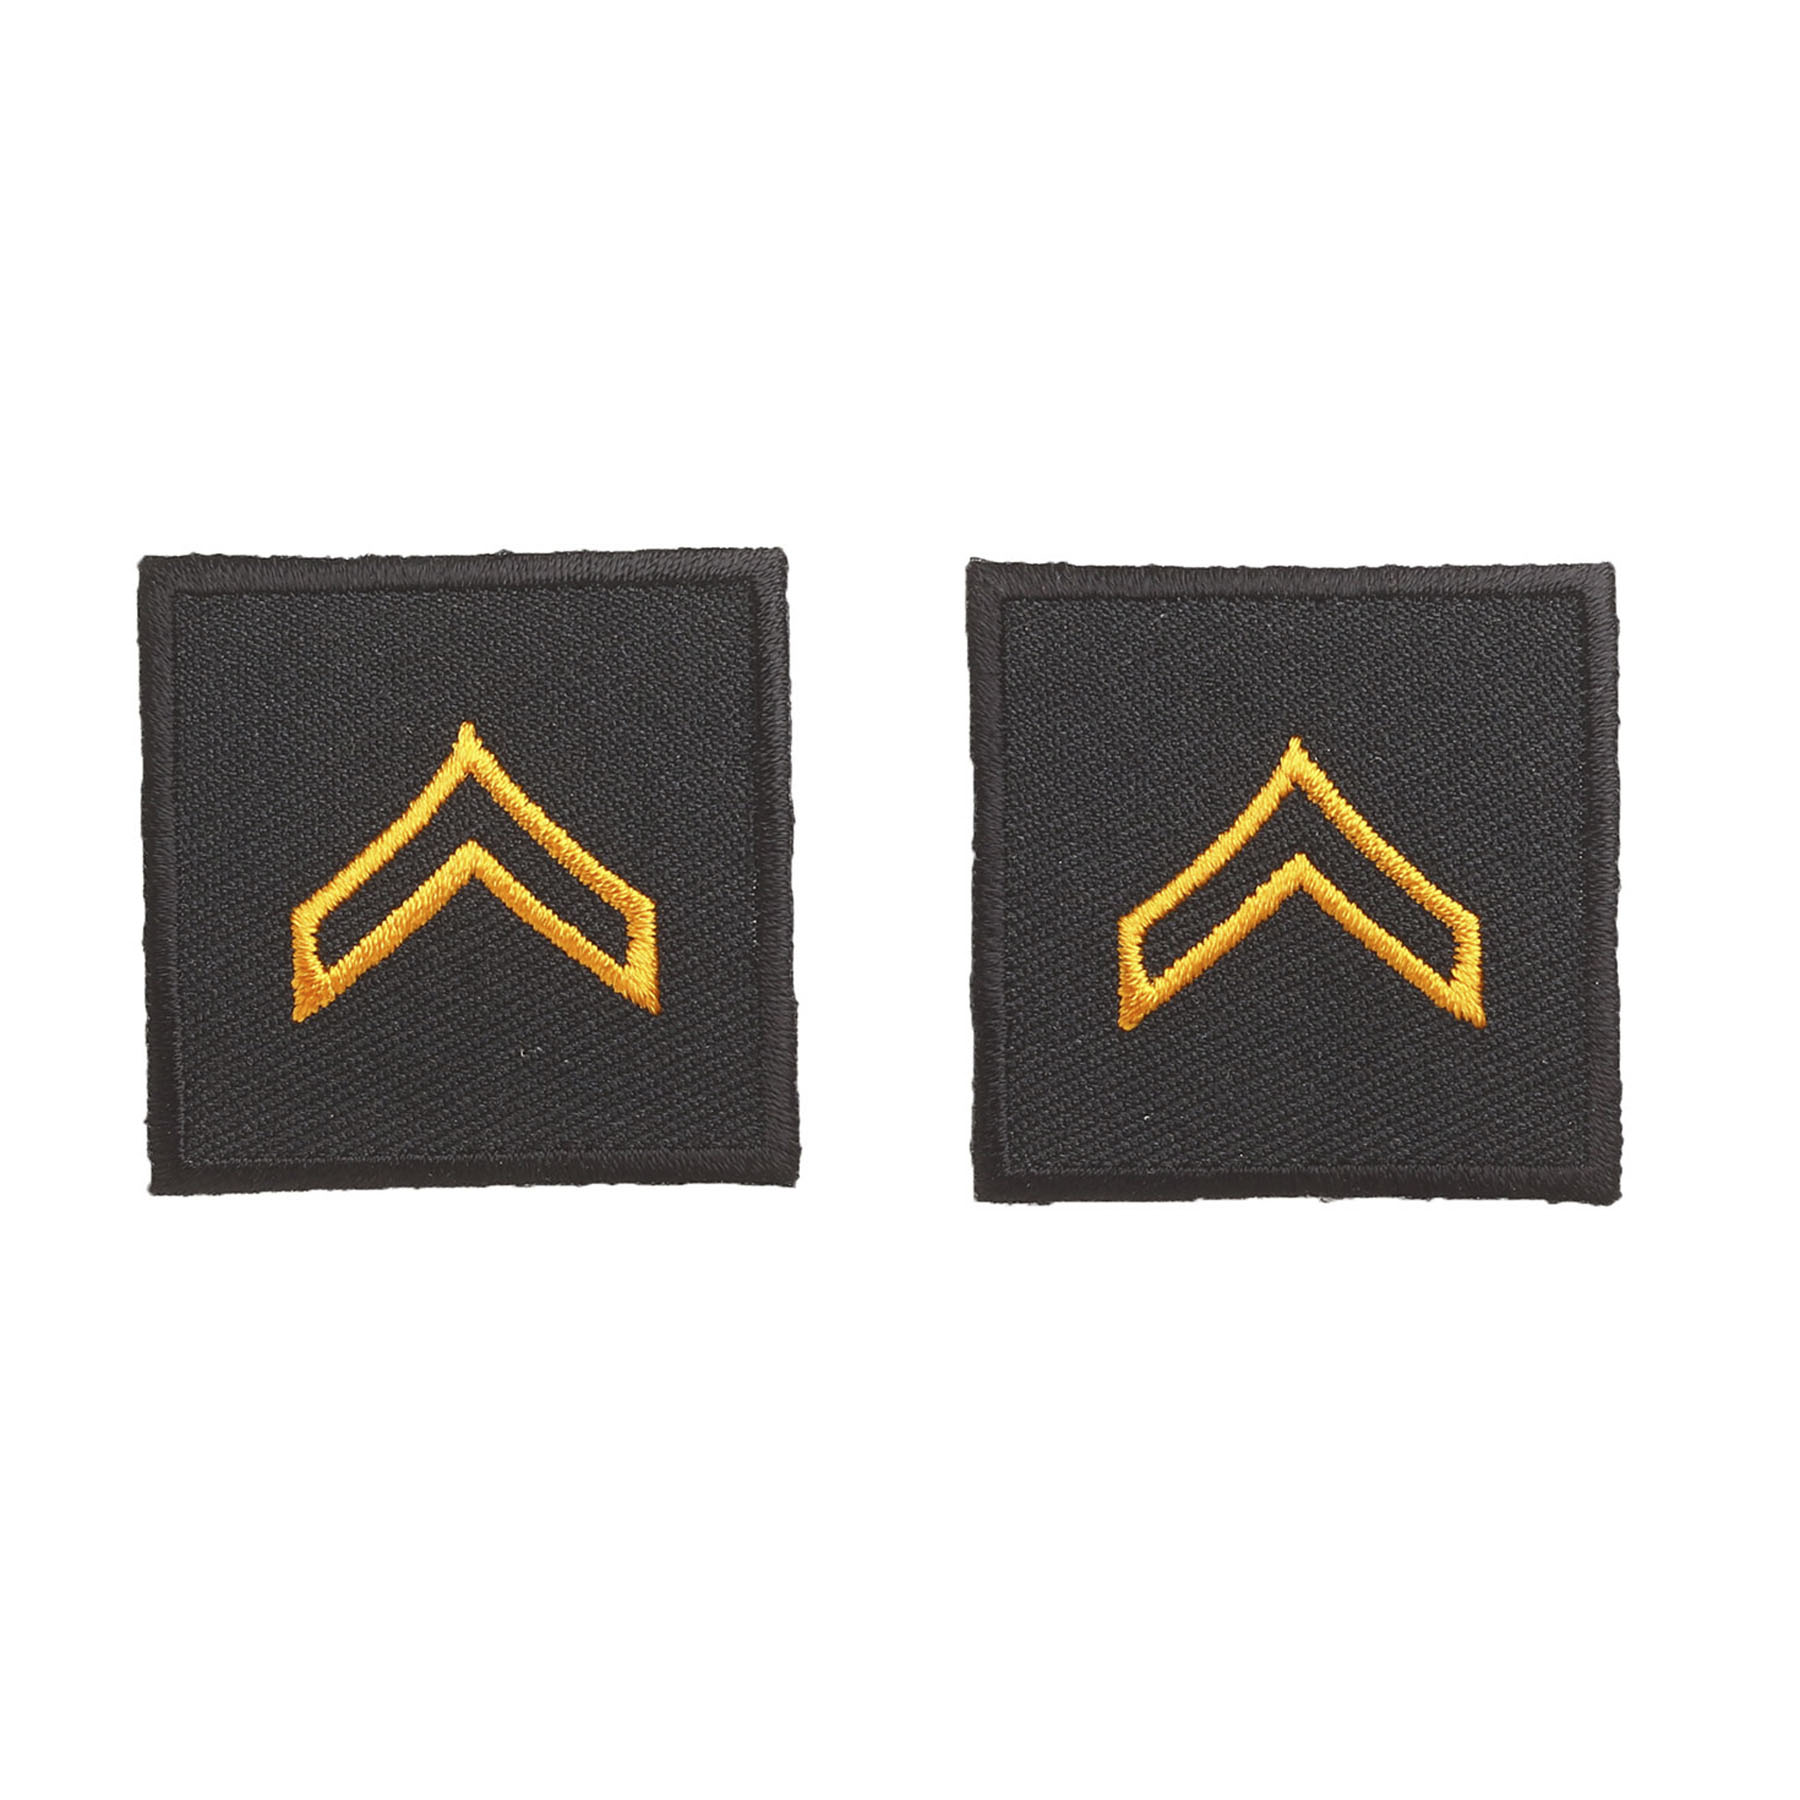 "Hero's Pride Embroidered Rank 1-1/2"" x 1-1/2"""